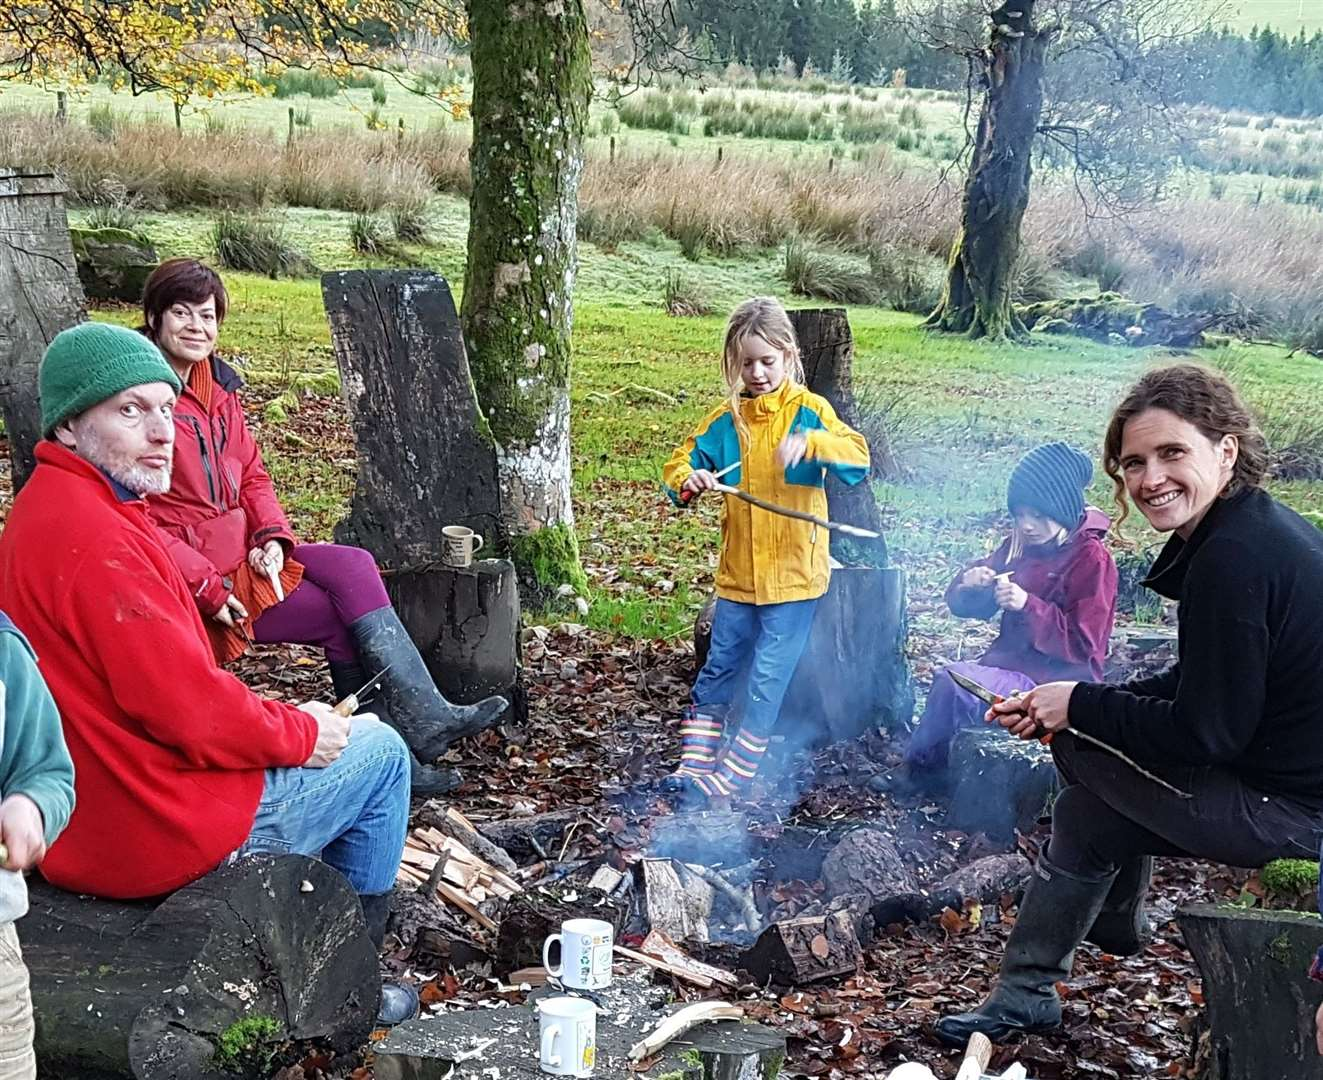 Rachel King enjoying a campfire with friends from the forest school. (43512761)